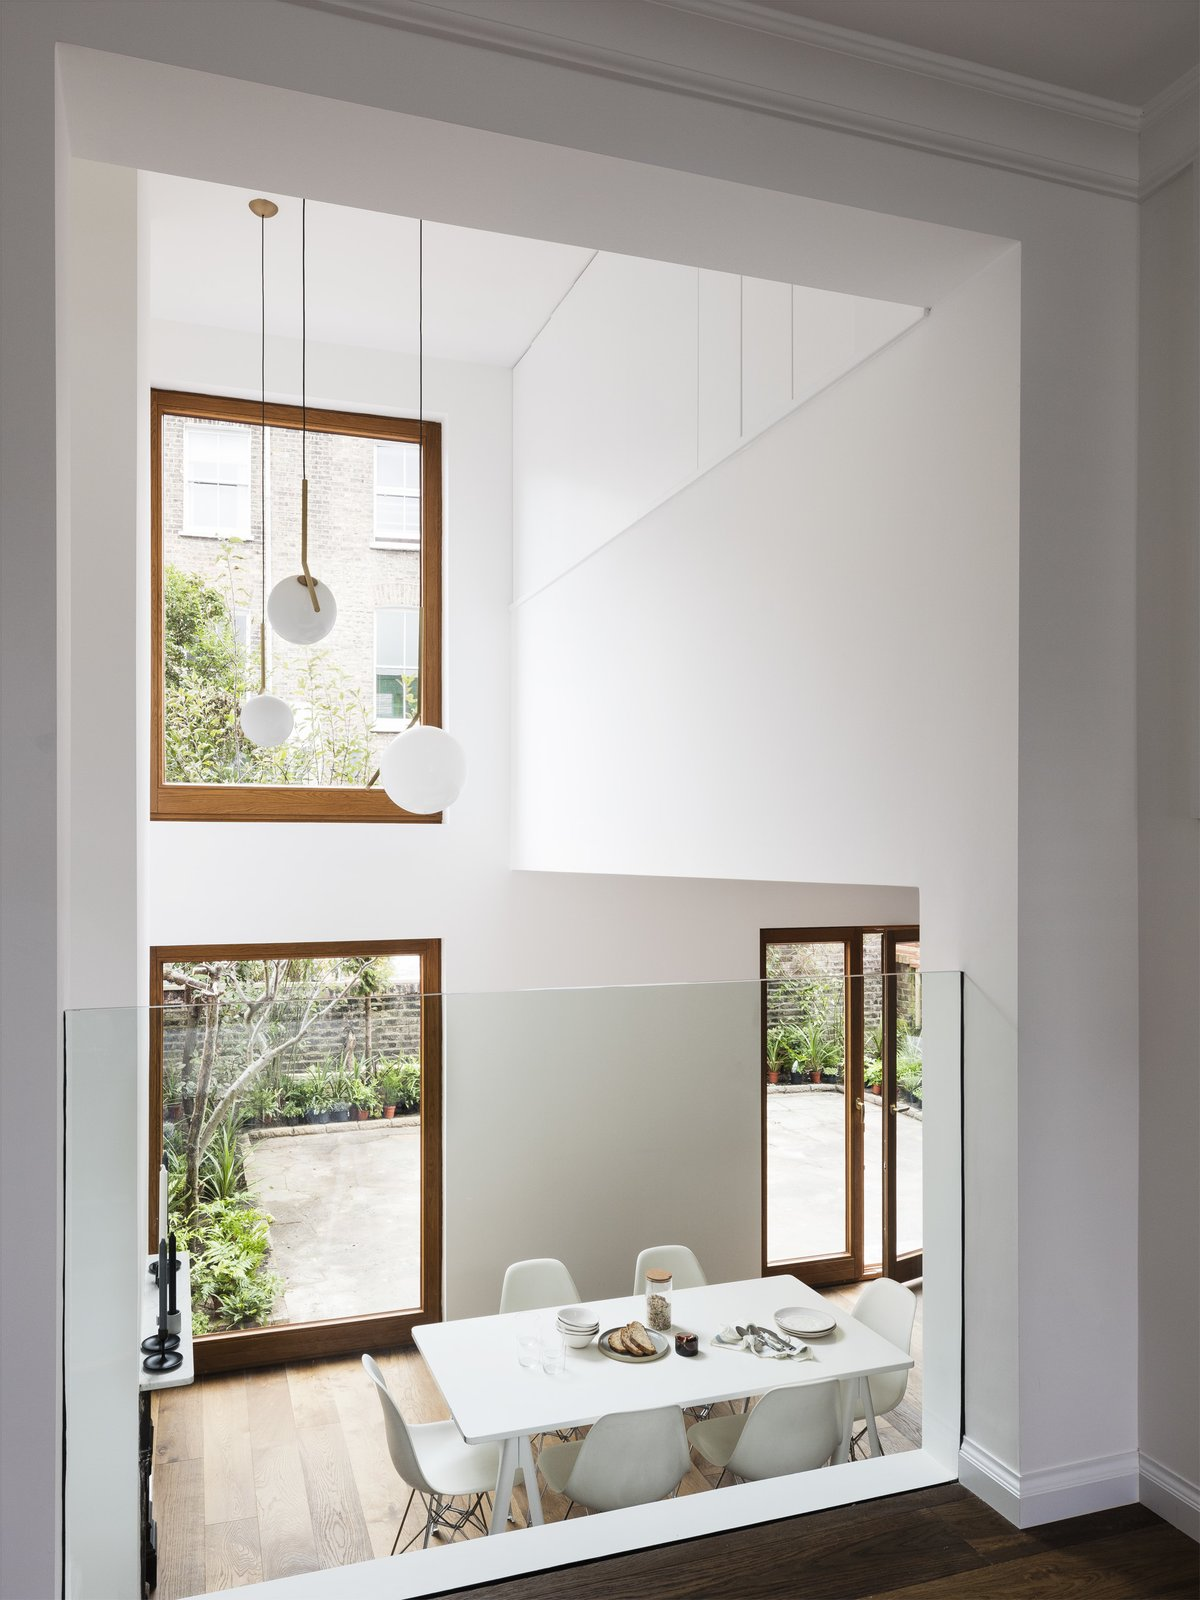 Large windows fill the main living and dining space with natural light.  FLOS IC Pendant Lights hang in the double height space. Tagged: Dining Room, Chair, Table, Pendant Lighting, and Medium Hardwood Floor.  Best Photos from A Sleek Renovation in London Ushers Light Into a Family Home